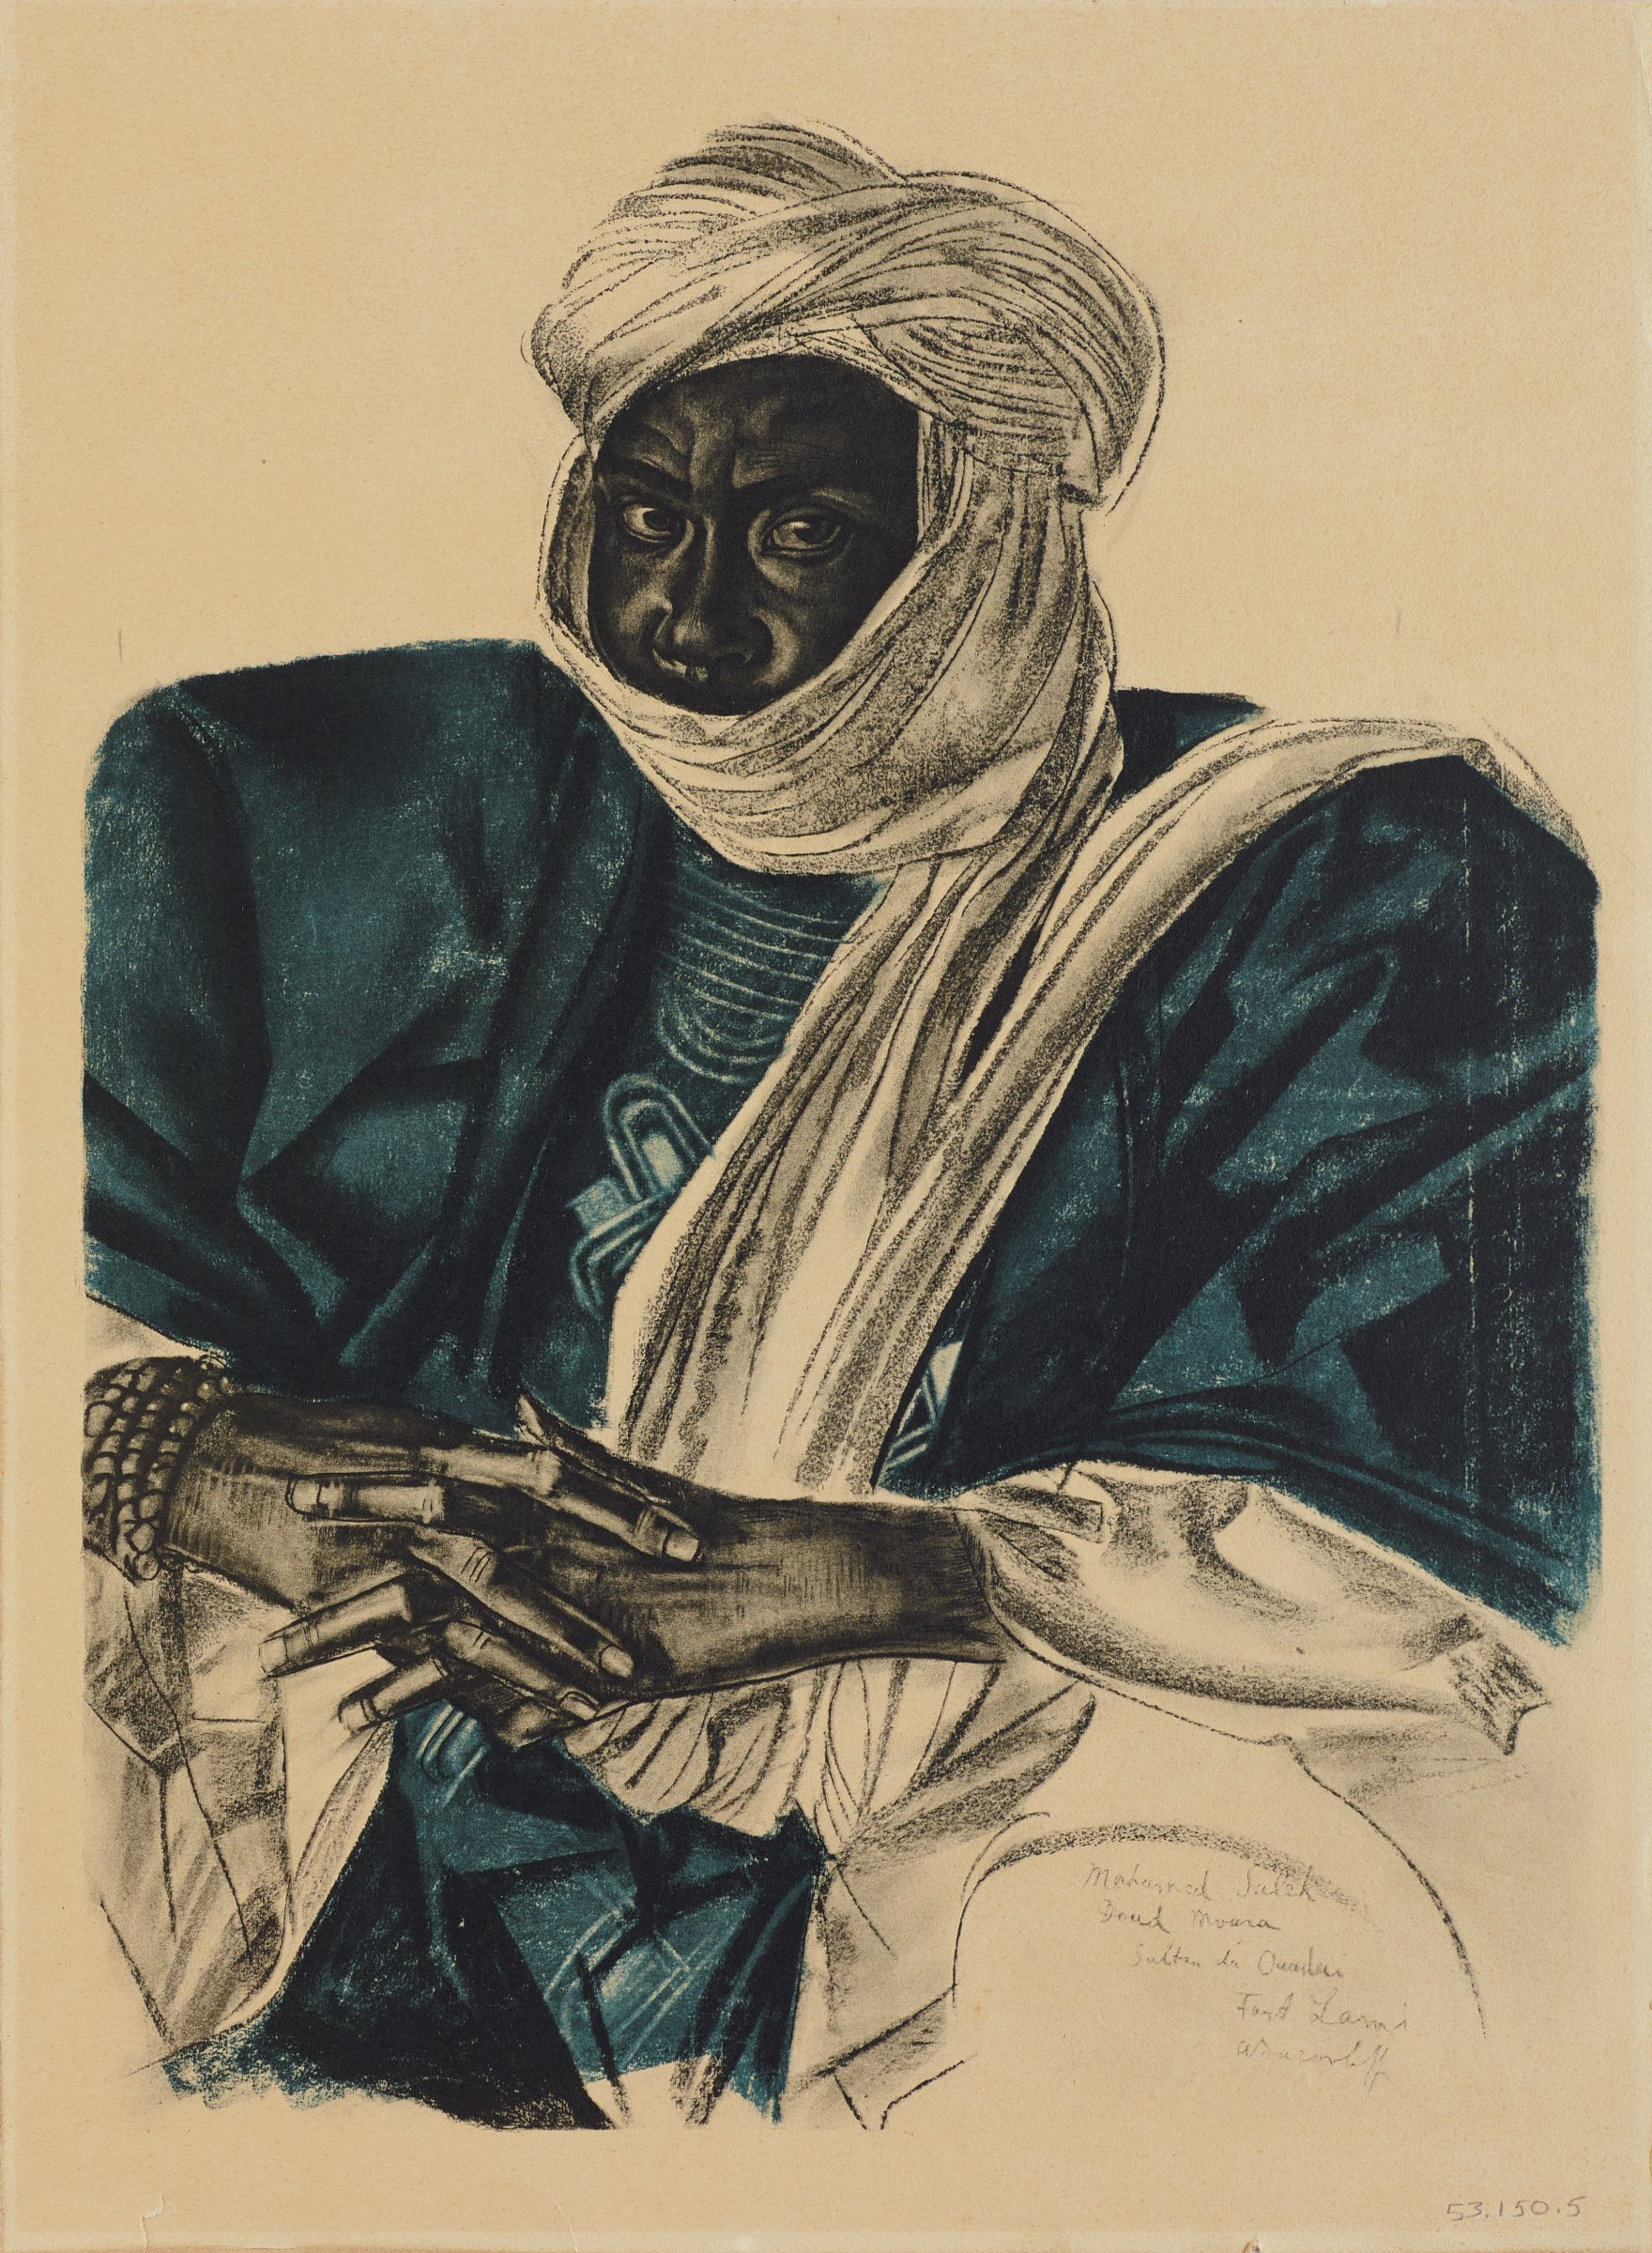 Half length portrait of a male figure in a dark teal robe with a white headscarf that covers his mouth and chin. He looks out at the viewer, and his hands are laced across his stomach. This series is a product of Jacovleff's involvement in the Expédition Citroën Centre-Afrique.